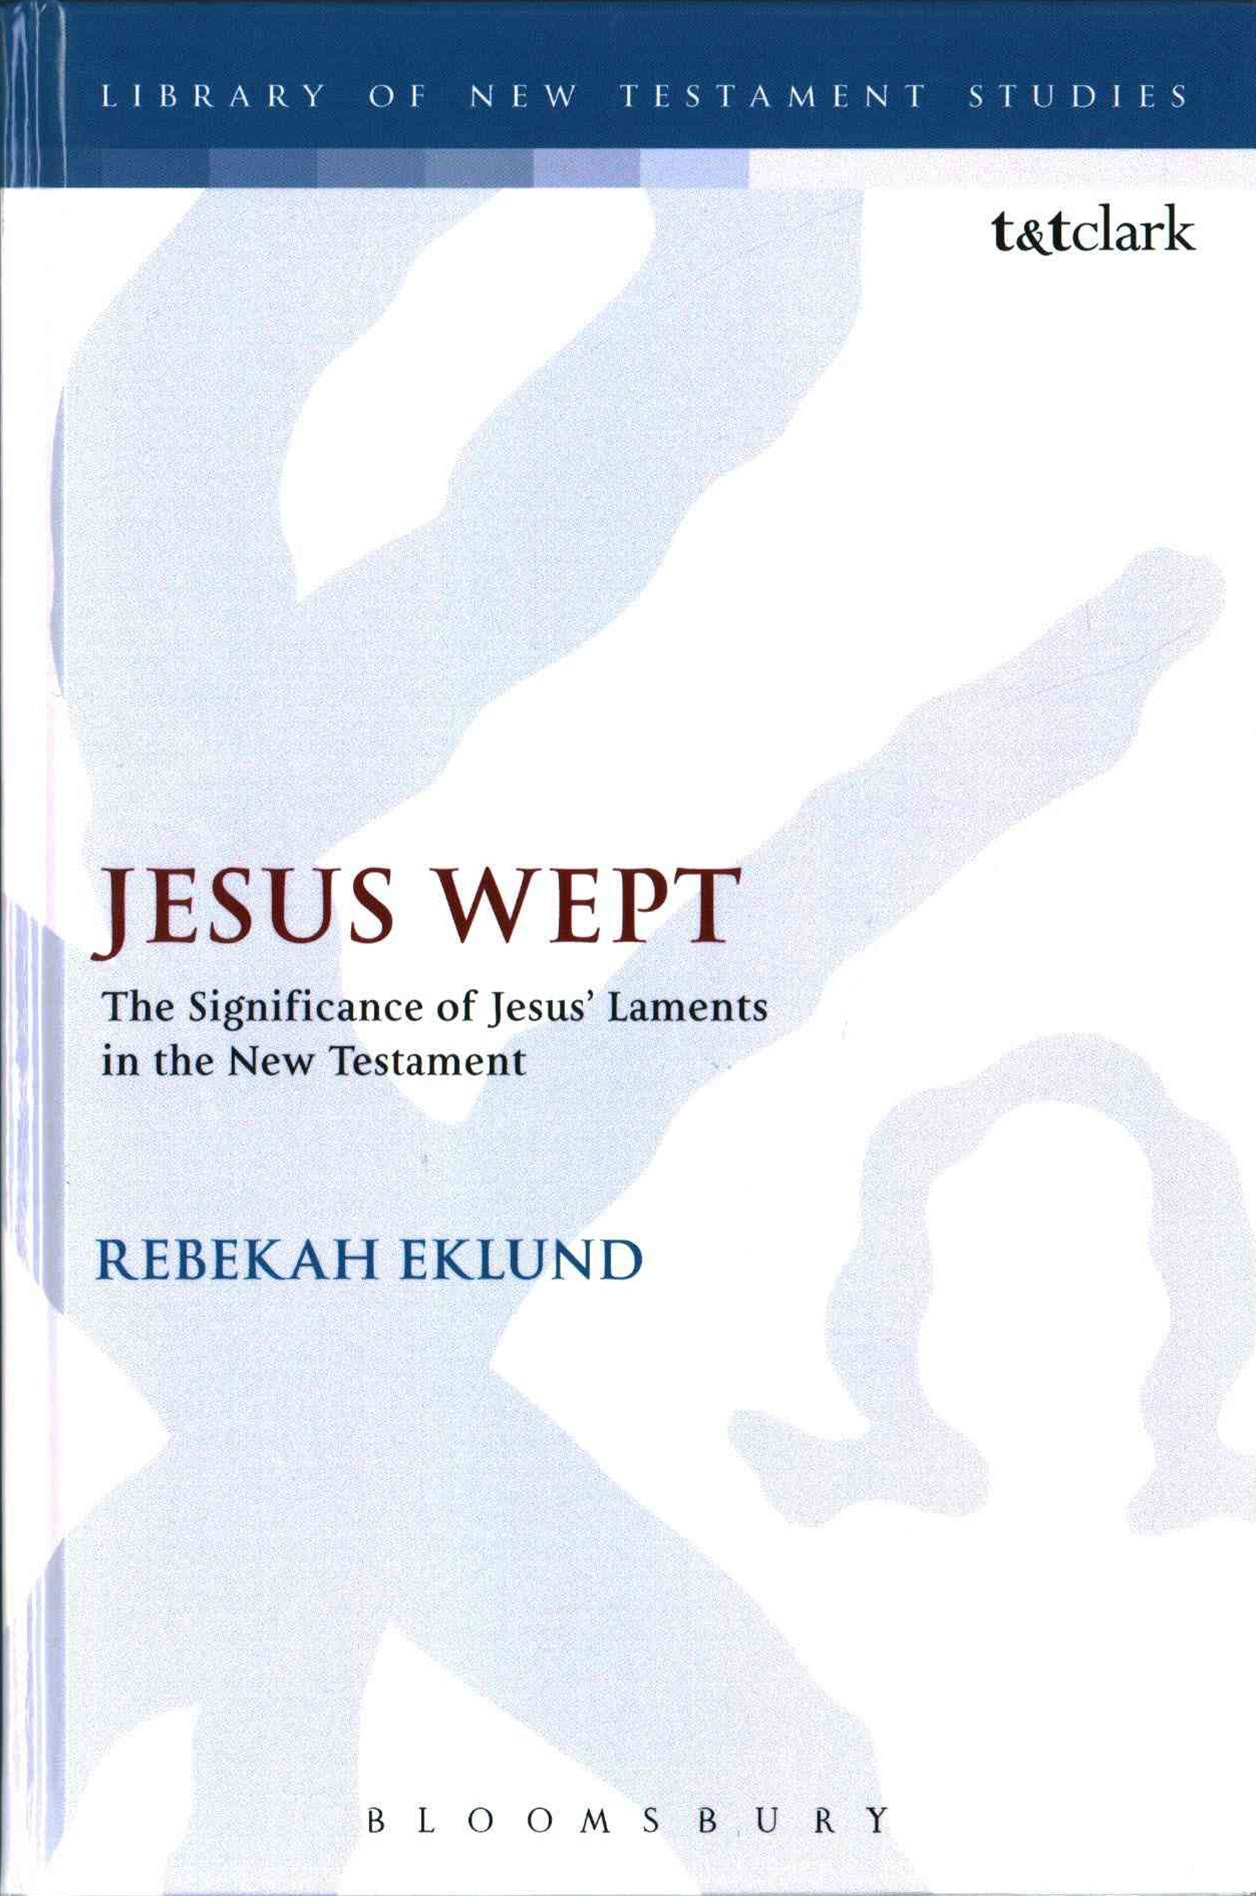 Jesus Wept - The Significance of Jesus' Laments in the New Testament